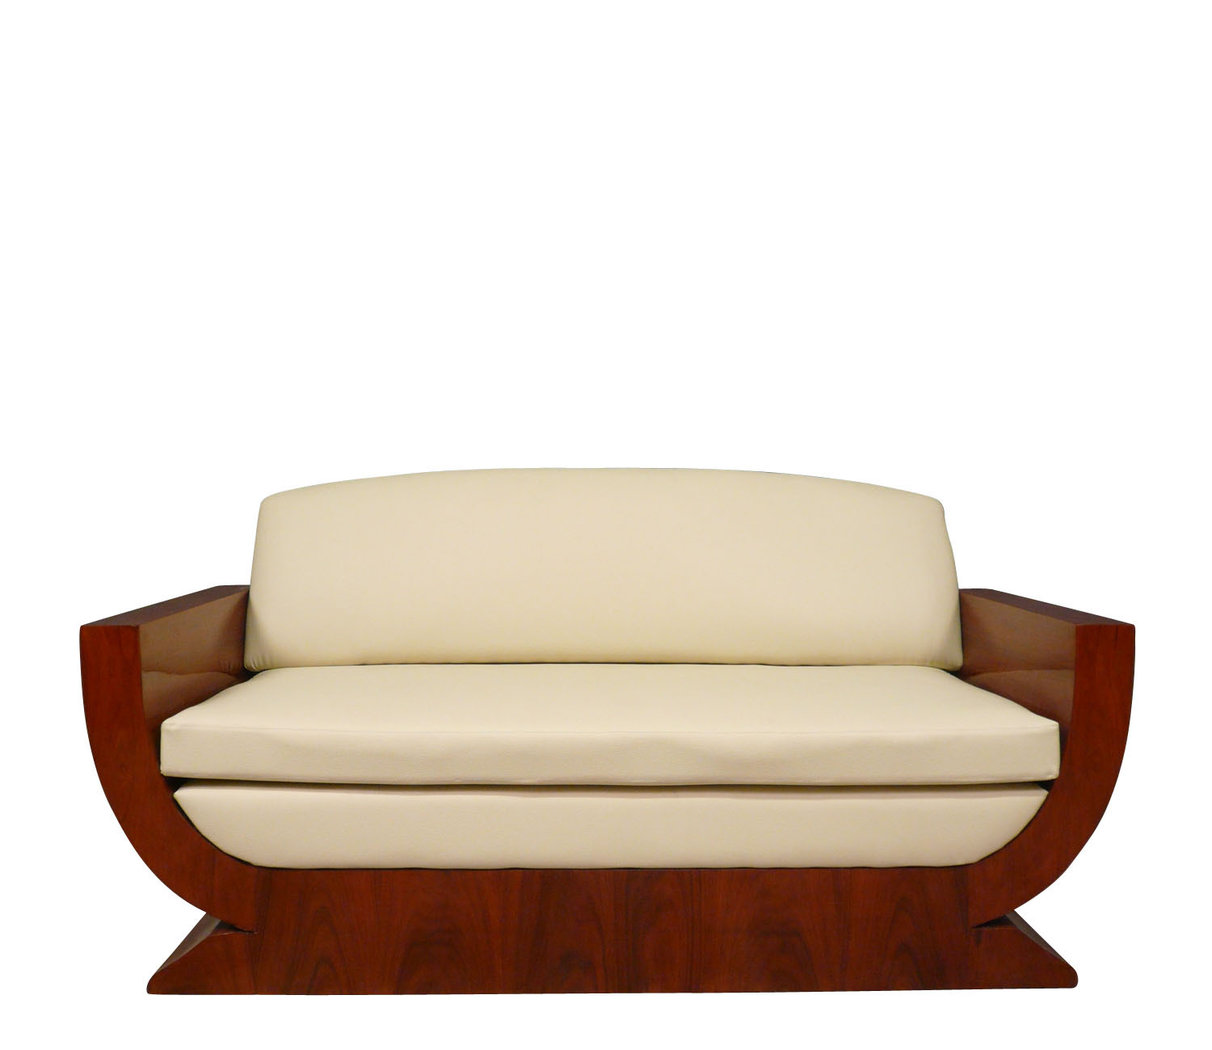 Canapé Sofa Art Deco Sofa Art Deco Furniture